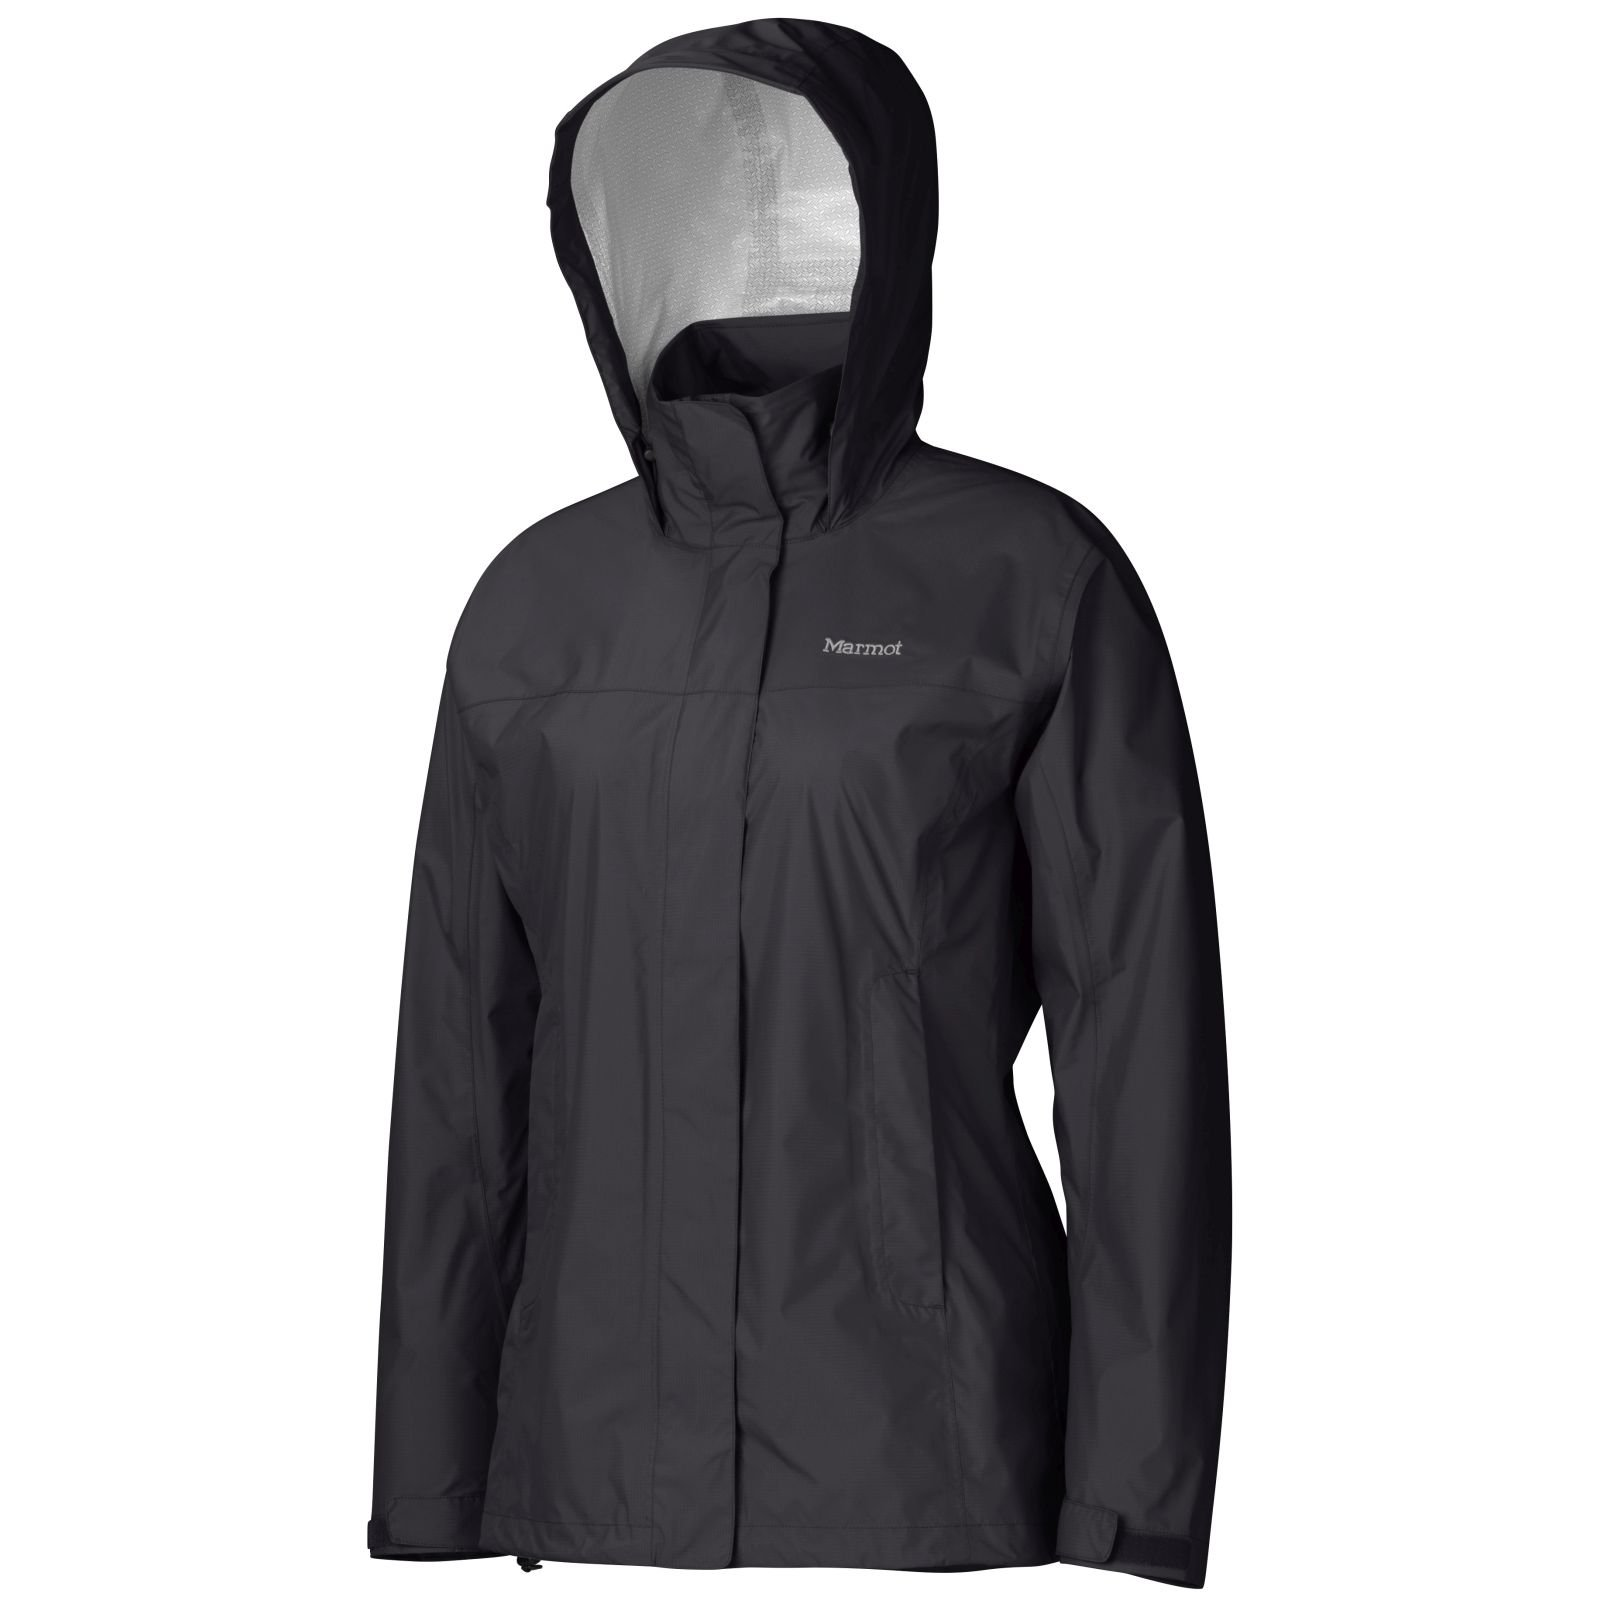 Marmot PreCip Women's Lightweight Waterproof Rain Jacket, Black, Large by Marmot